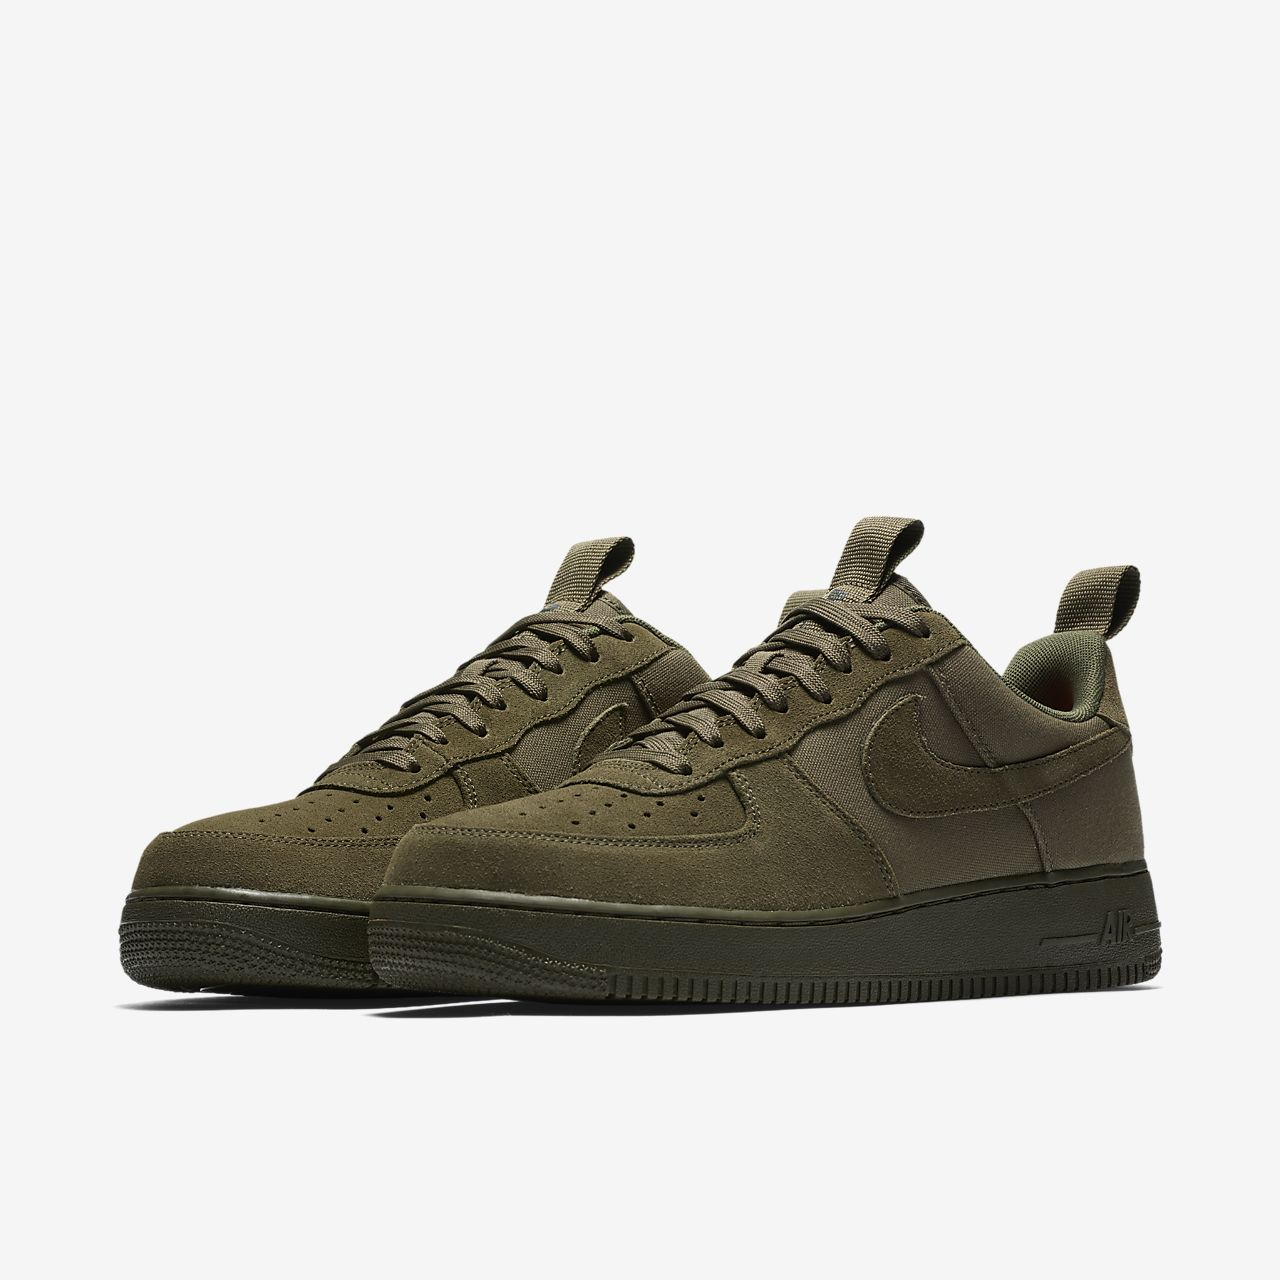 Lunar Force 1 Low Duckboot Lo Sneaker chaussures olive oliveNike zIWGg0LS